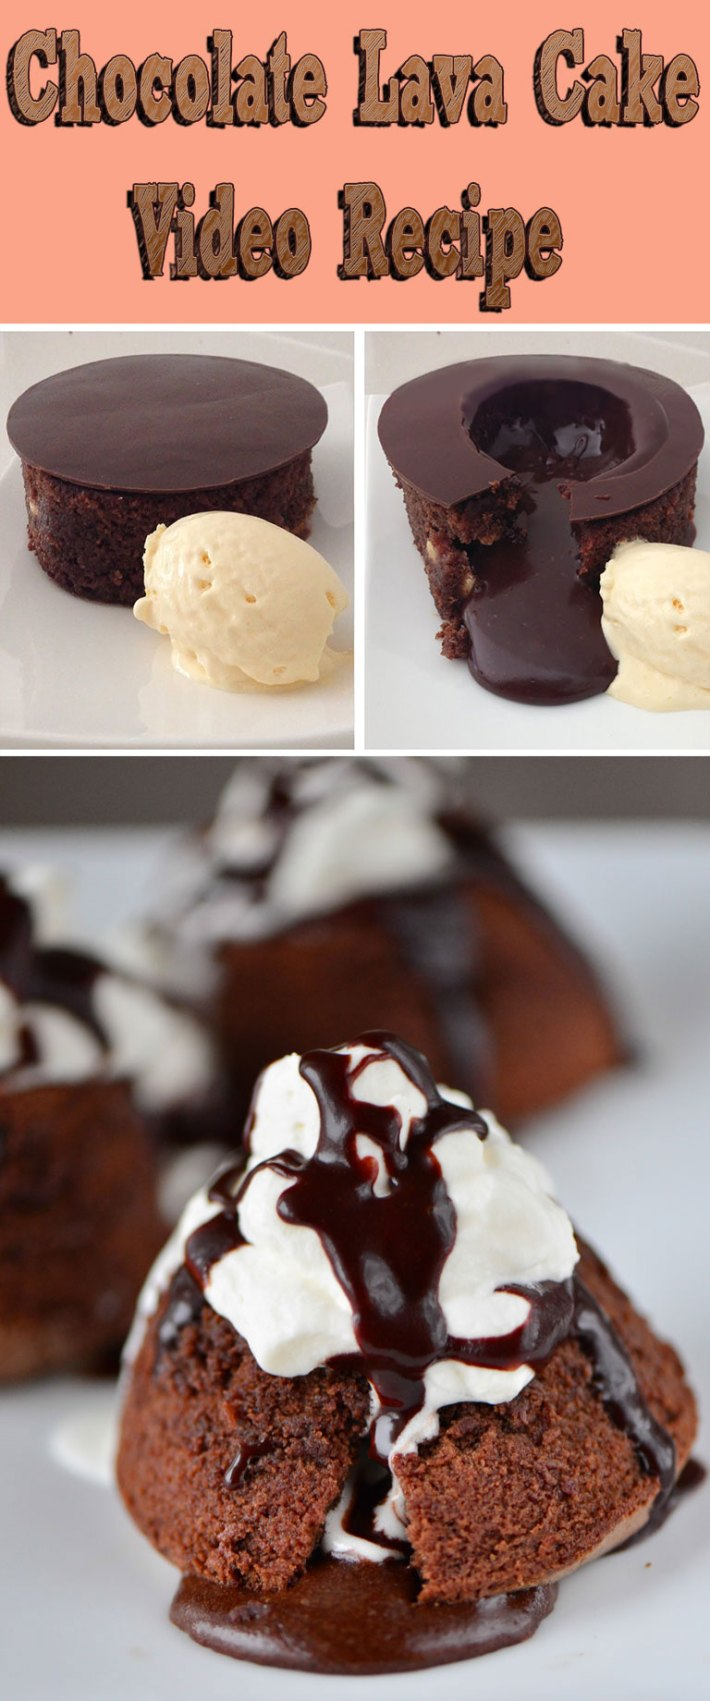 Chocolate Lava Cake – Video Recipe